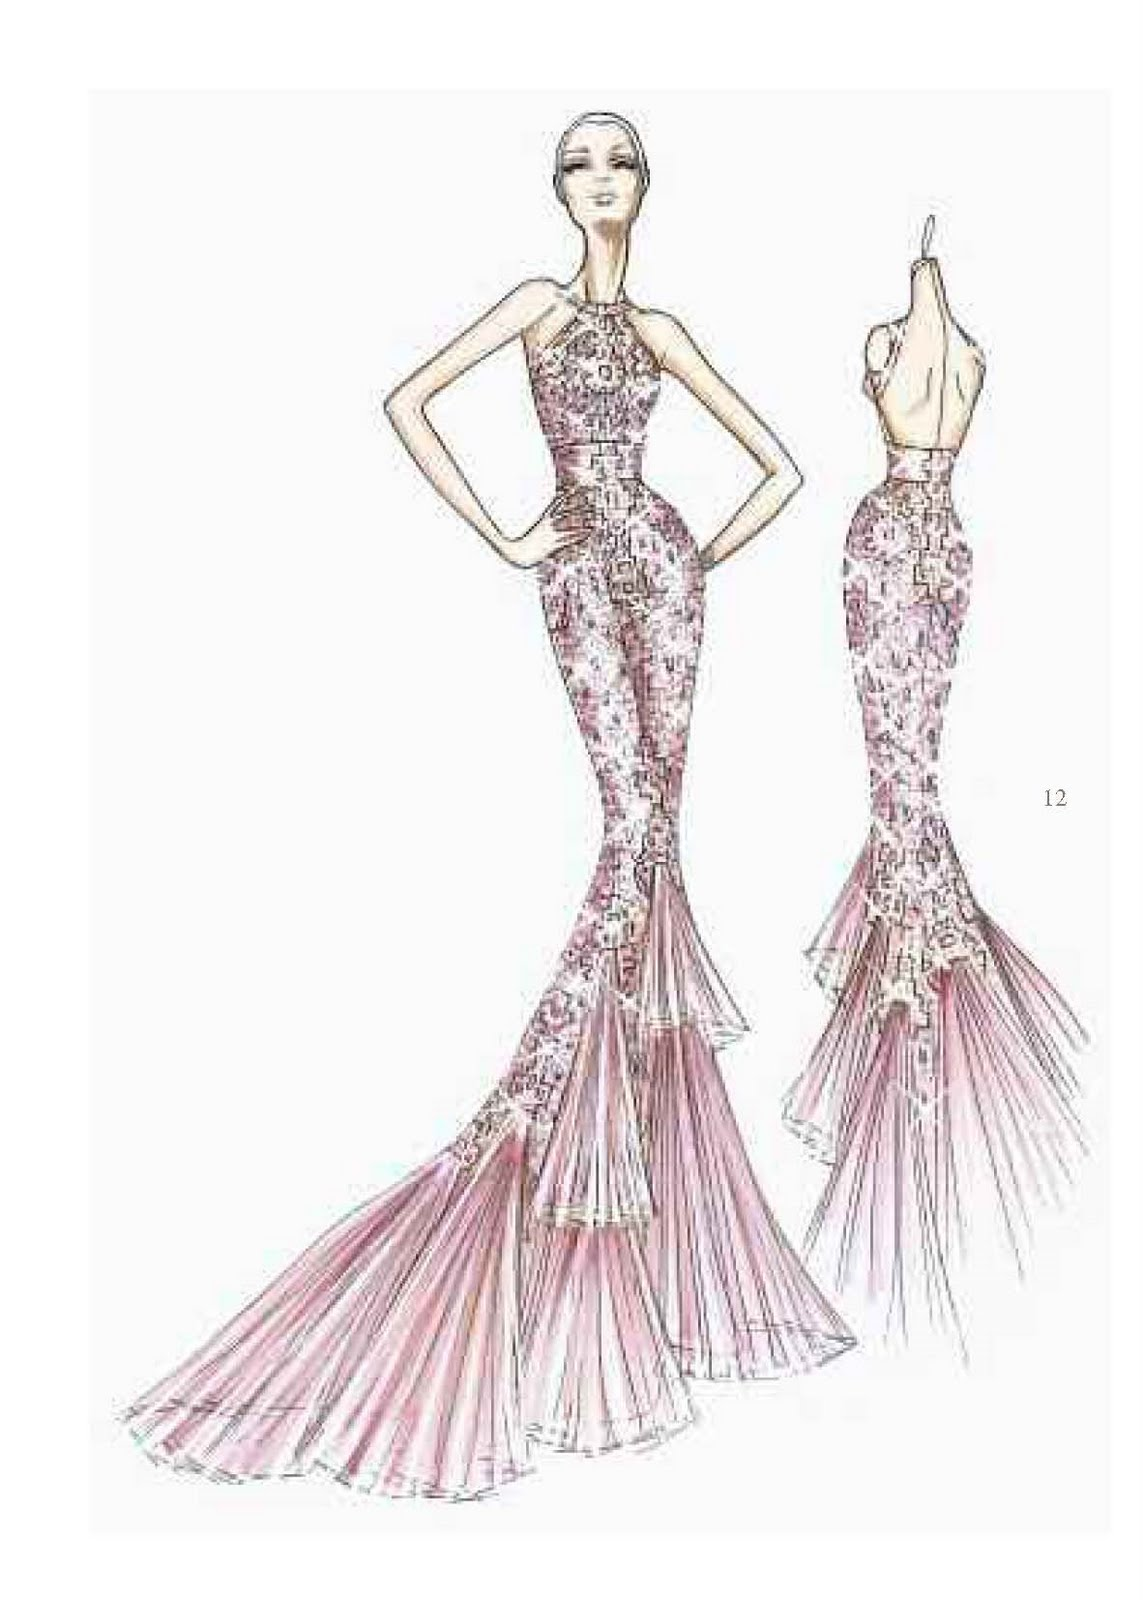 61 best images about Versace Sketches on Pinterest ...